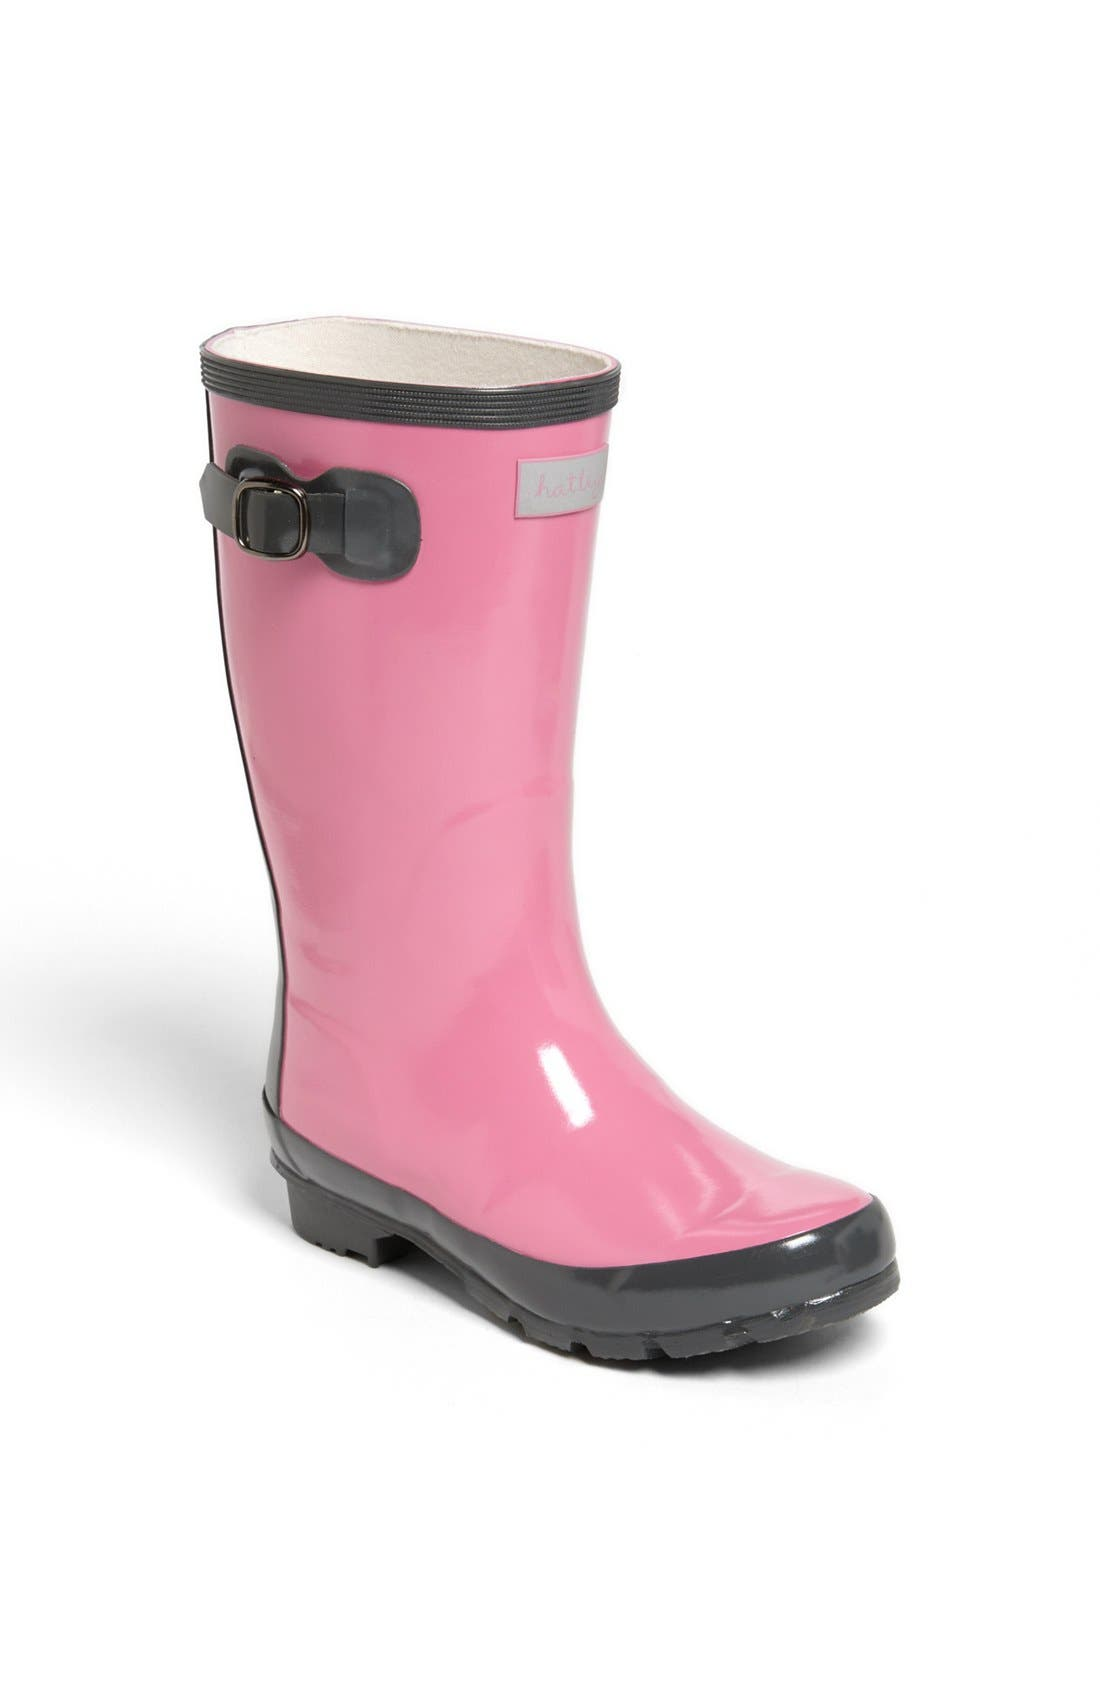 HATLEY 'Orchid Lily' Rain Boot, Main, color, 650